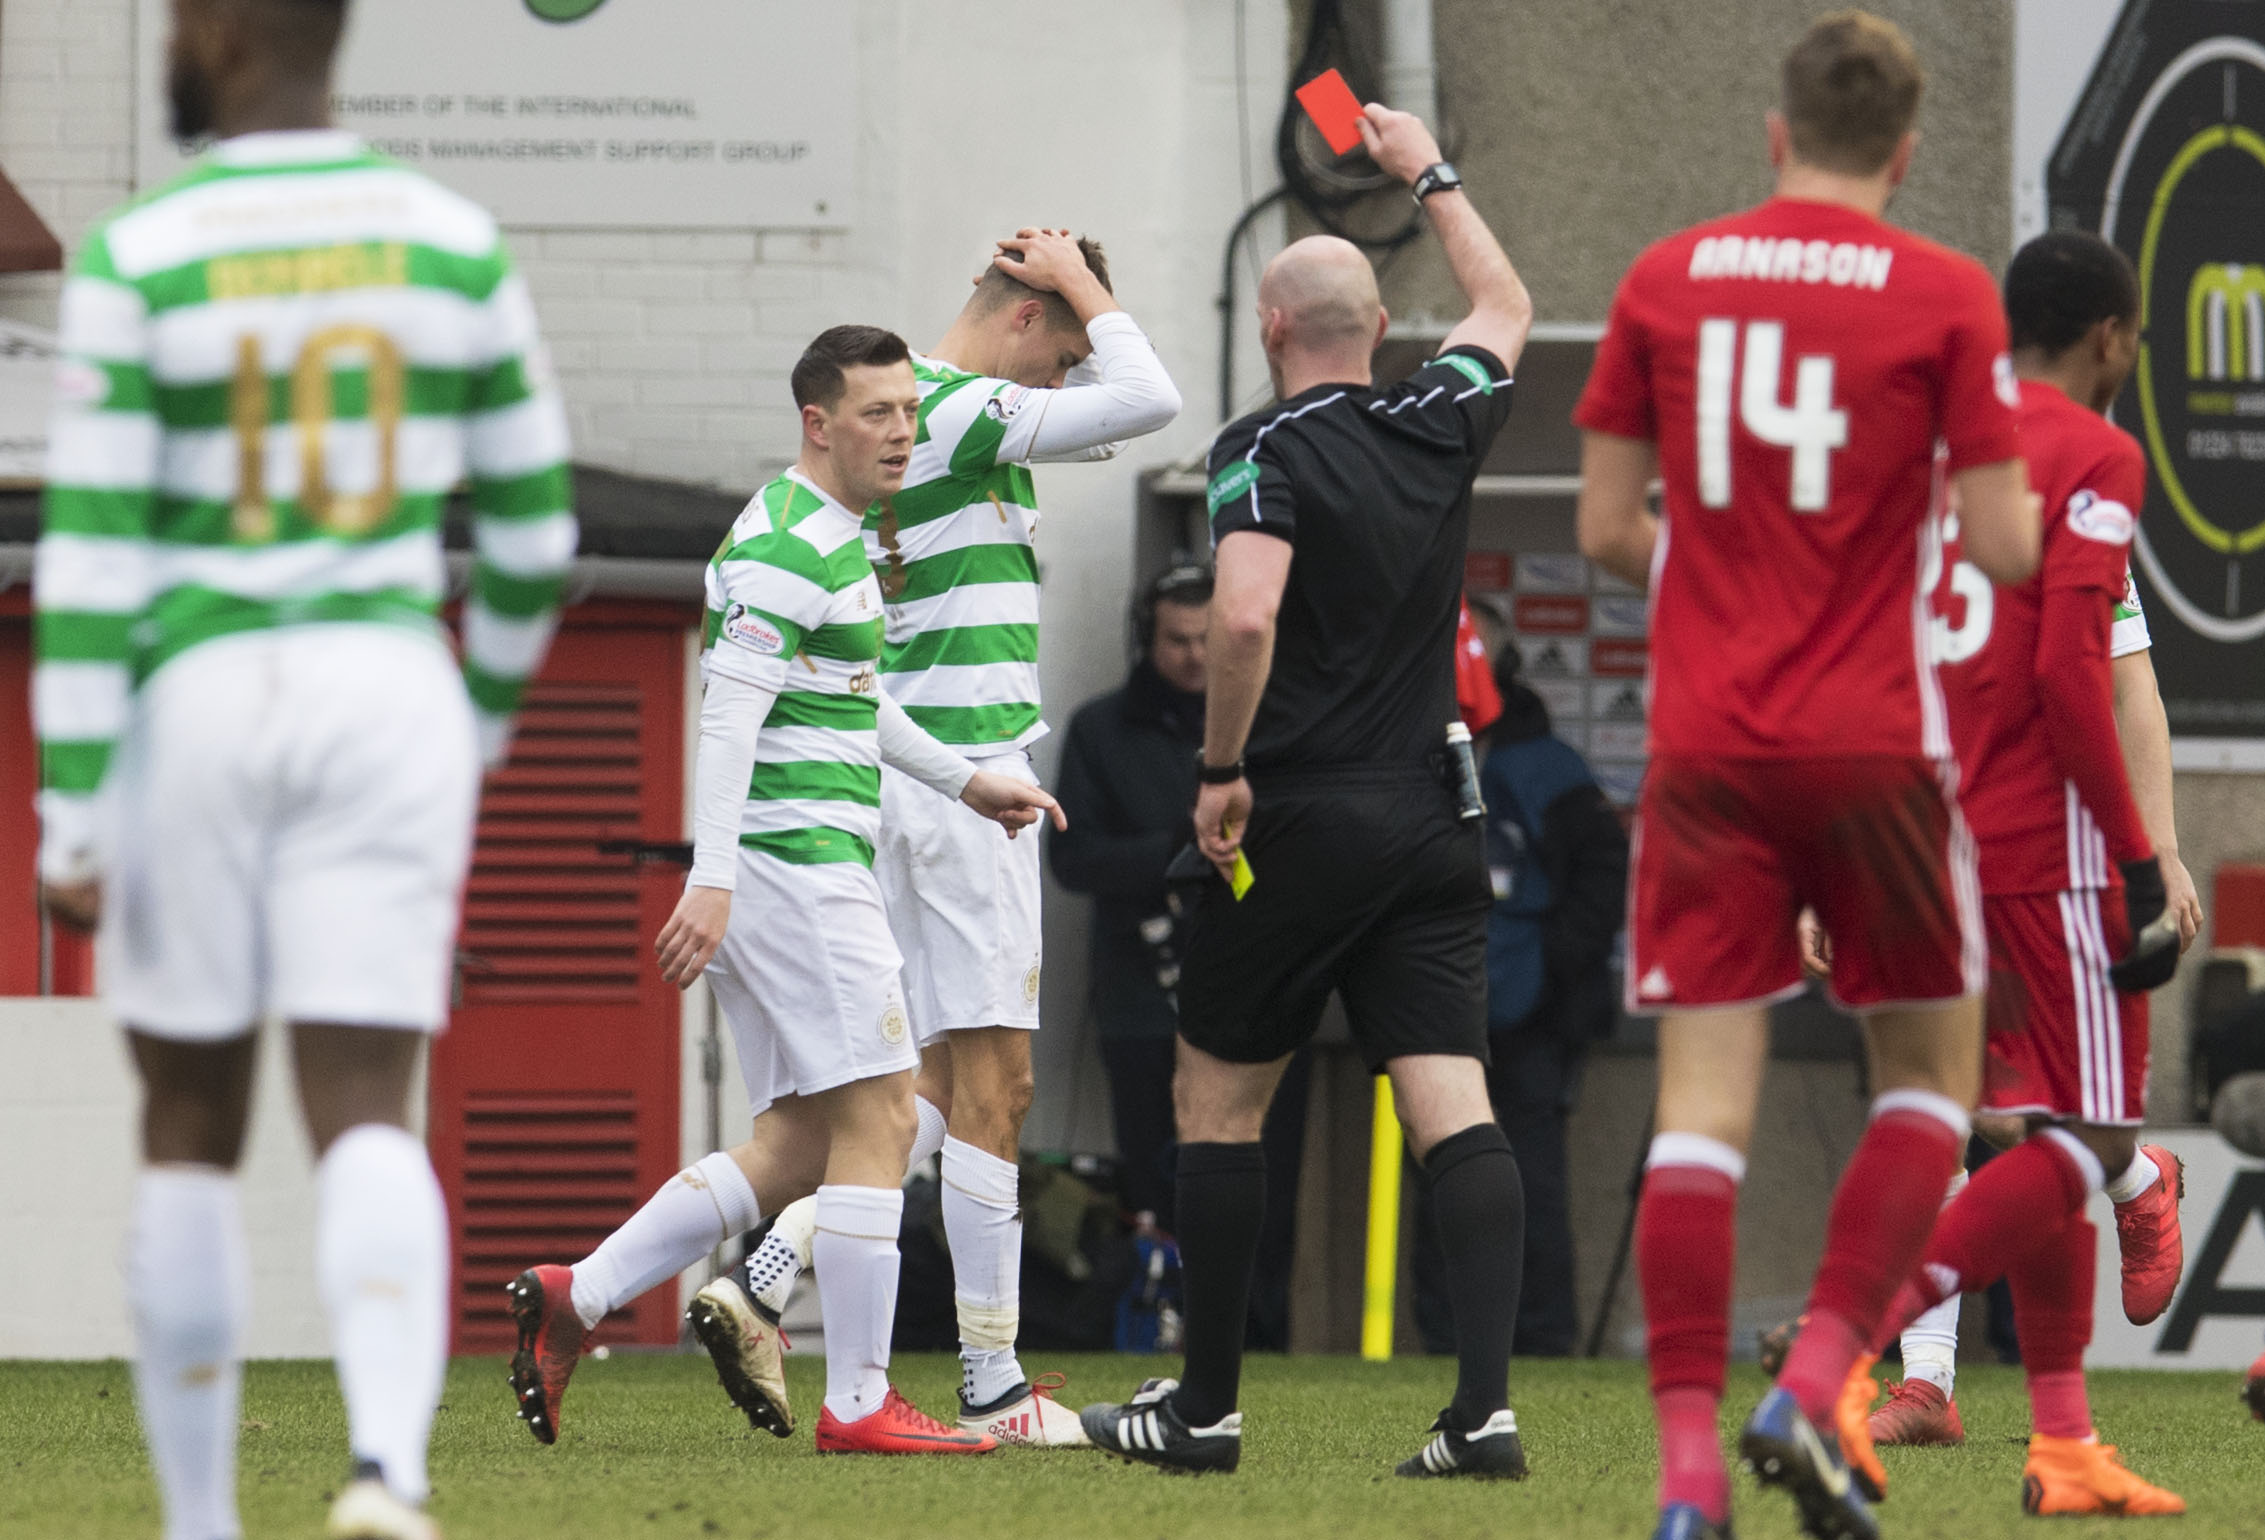 The 31-year-old Sweden right-back was sent off in the 2-0 Ladbrokes Premiership win over Aberdeen